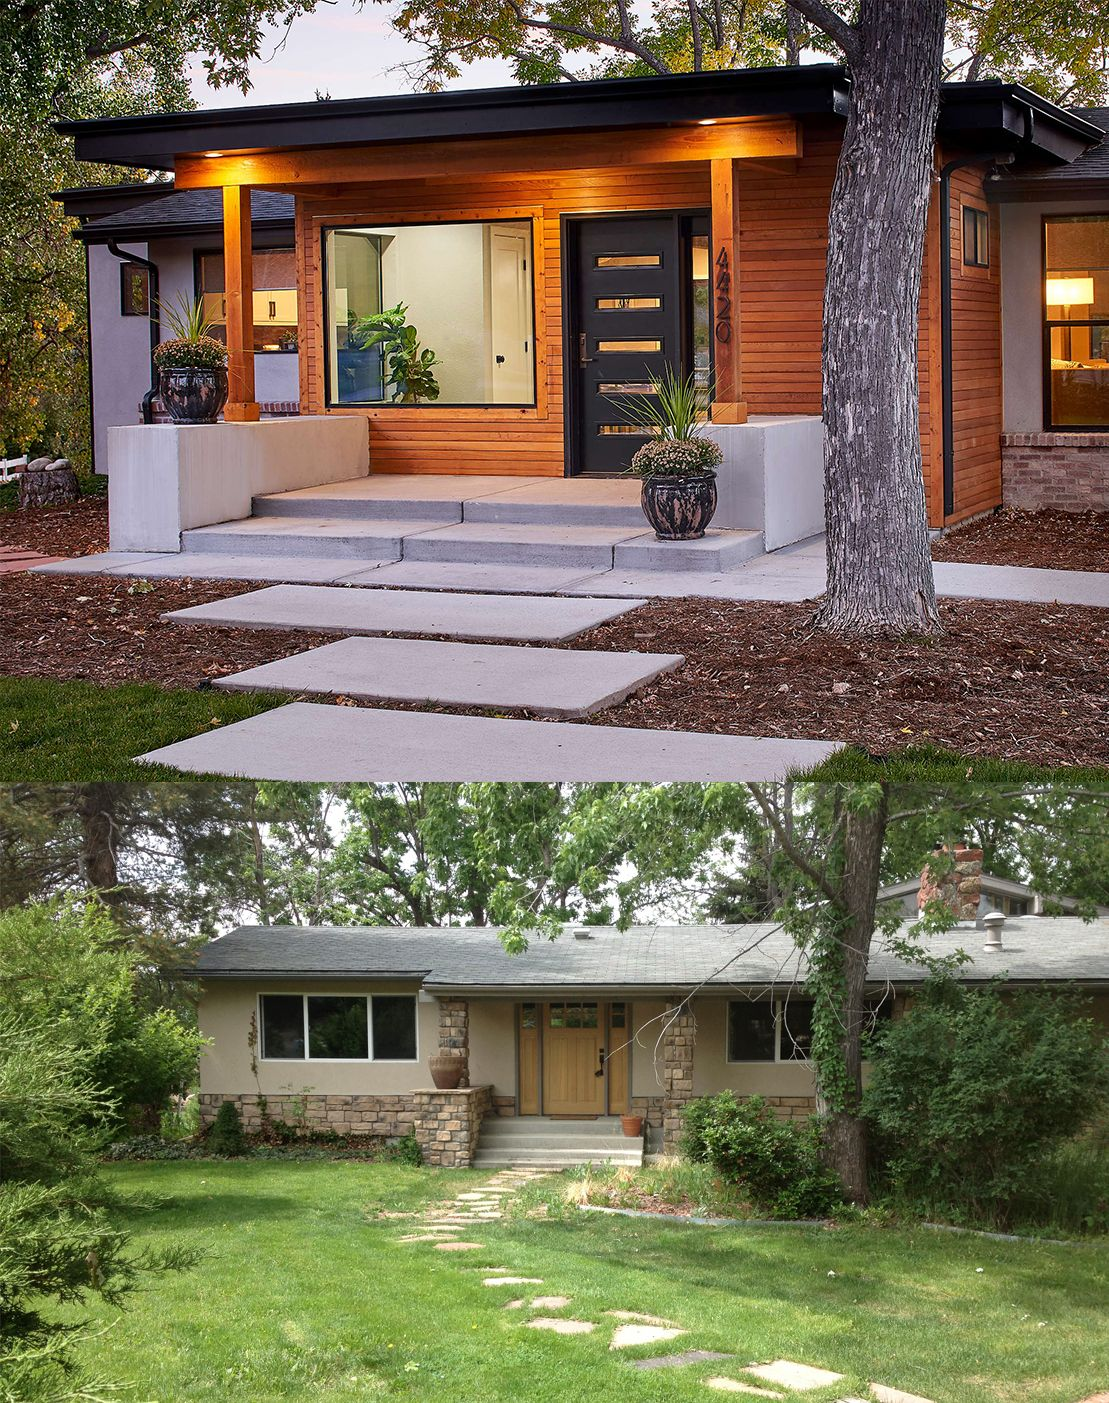 Denver Mid Century Home Gets Stunning Makeover Completely Transforming Its Curb Appeal Ranch House Exterior Modern House Exterior House Makeovers